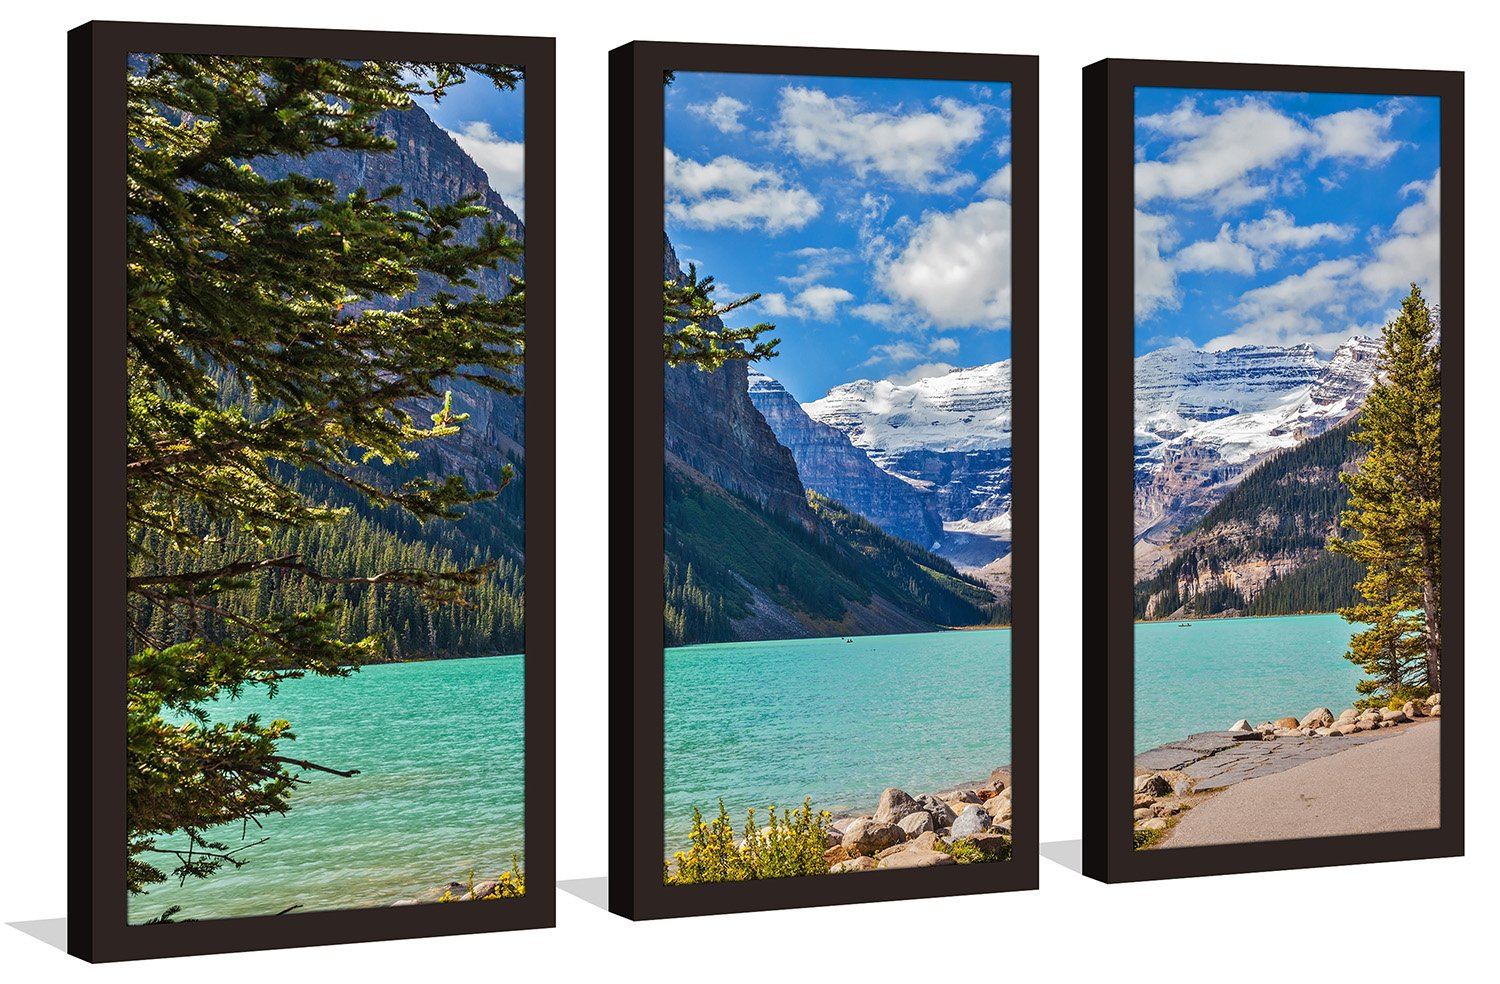 Picture Perfect InternationalAlberta Wonders Framed Plexiglass Wall Art Set of 3